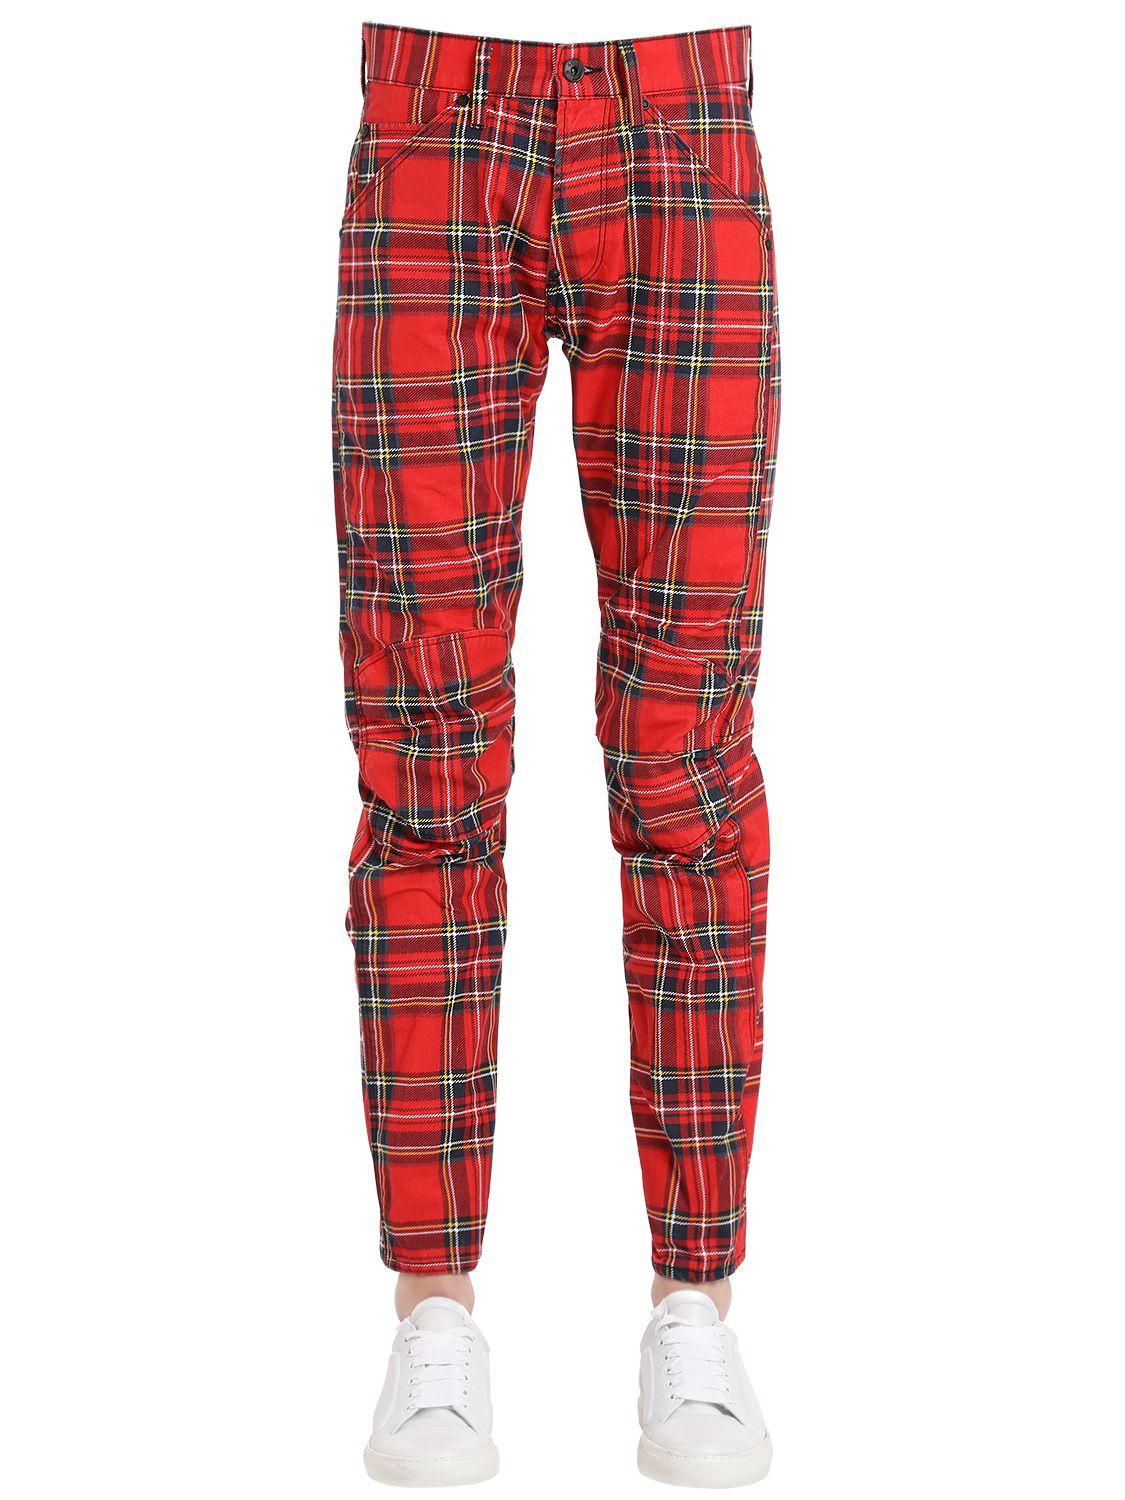 Lyst G Star Raw Plaid Printed Cotton Denim Jeans In Red